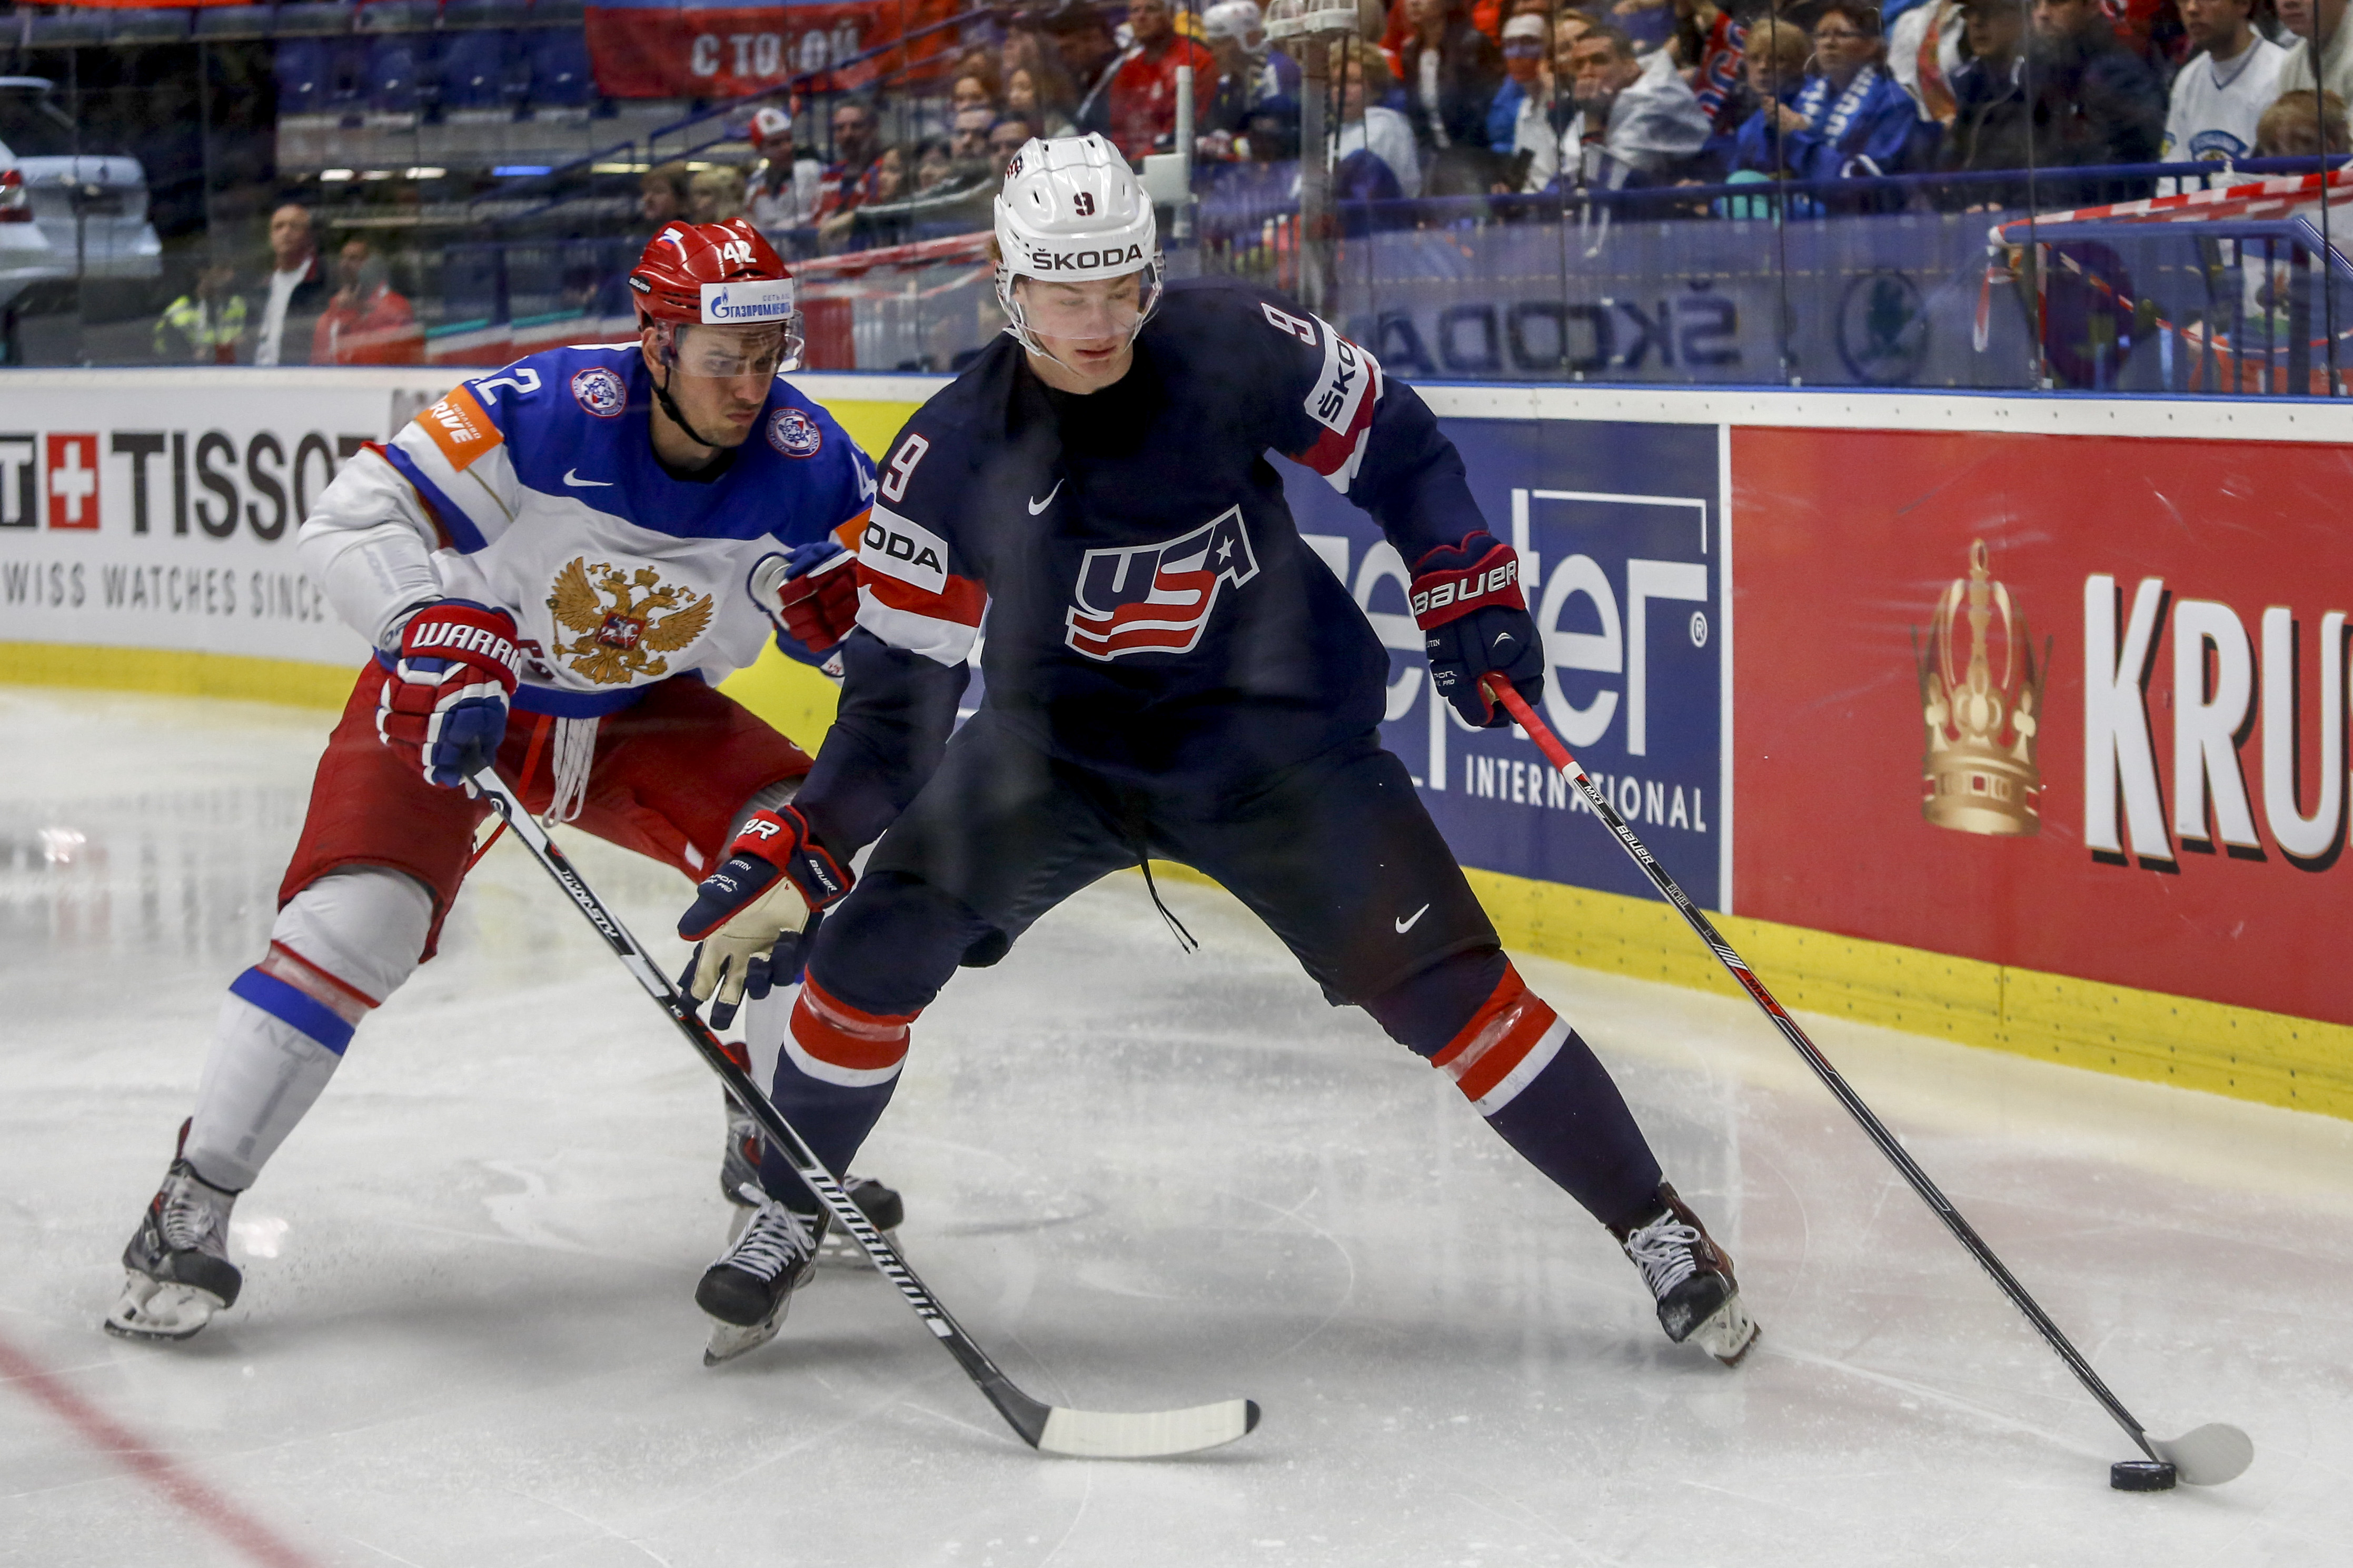 Jack Eichel recorded seven points in 10 games during the 2015 world championships. (Getty Images)